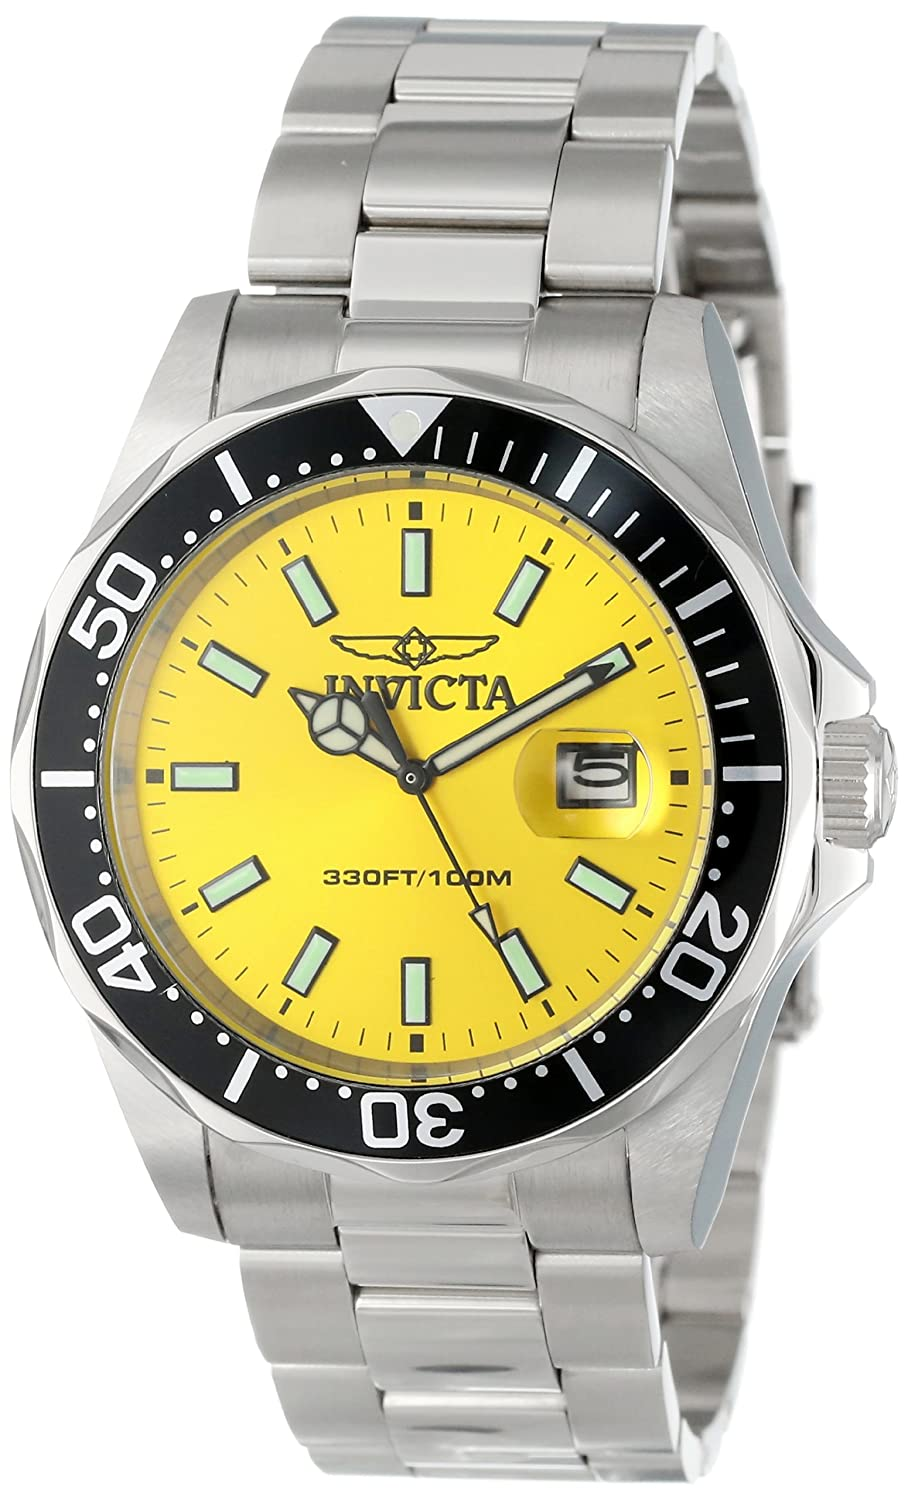 Invicta Men's 15447 Pro Diver Yellow Dial Stainless Steel Watch